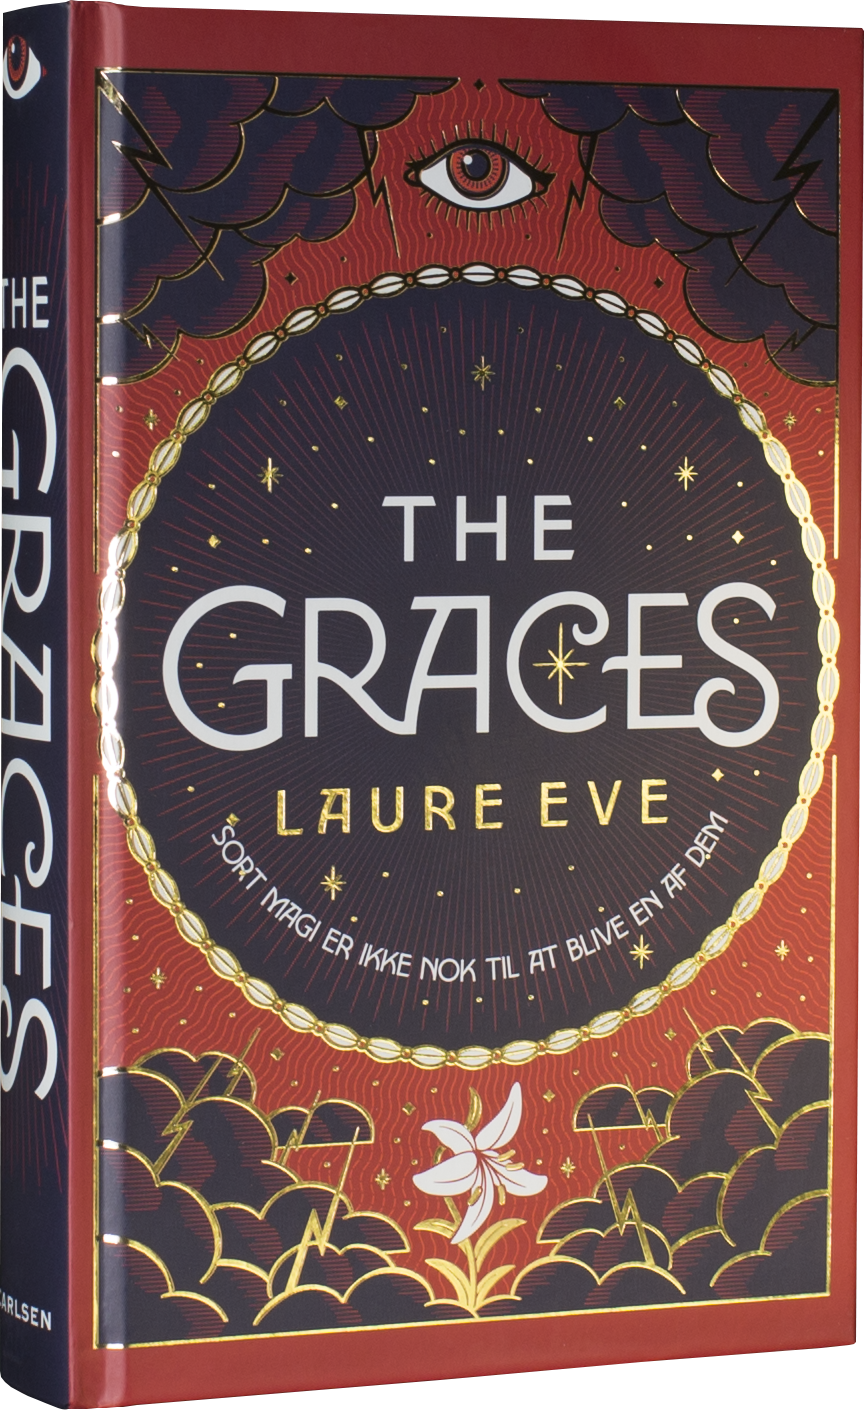 The Graces, Laure Eve